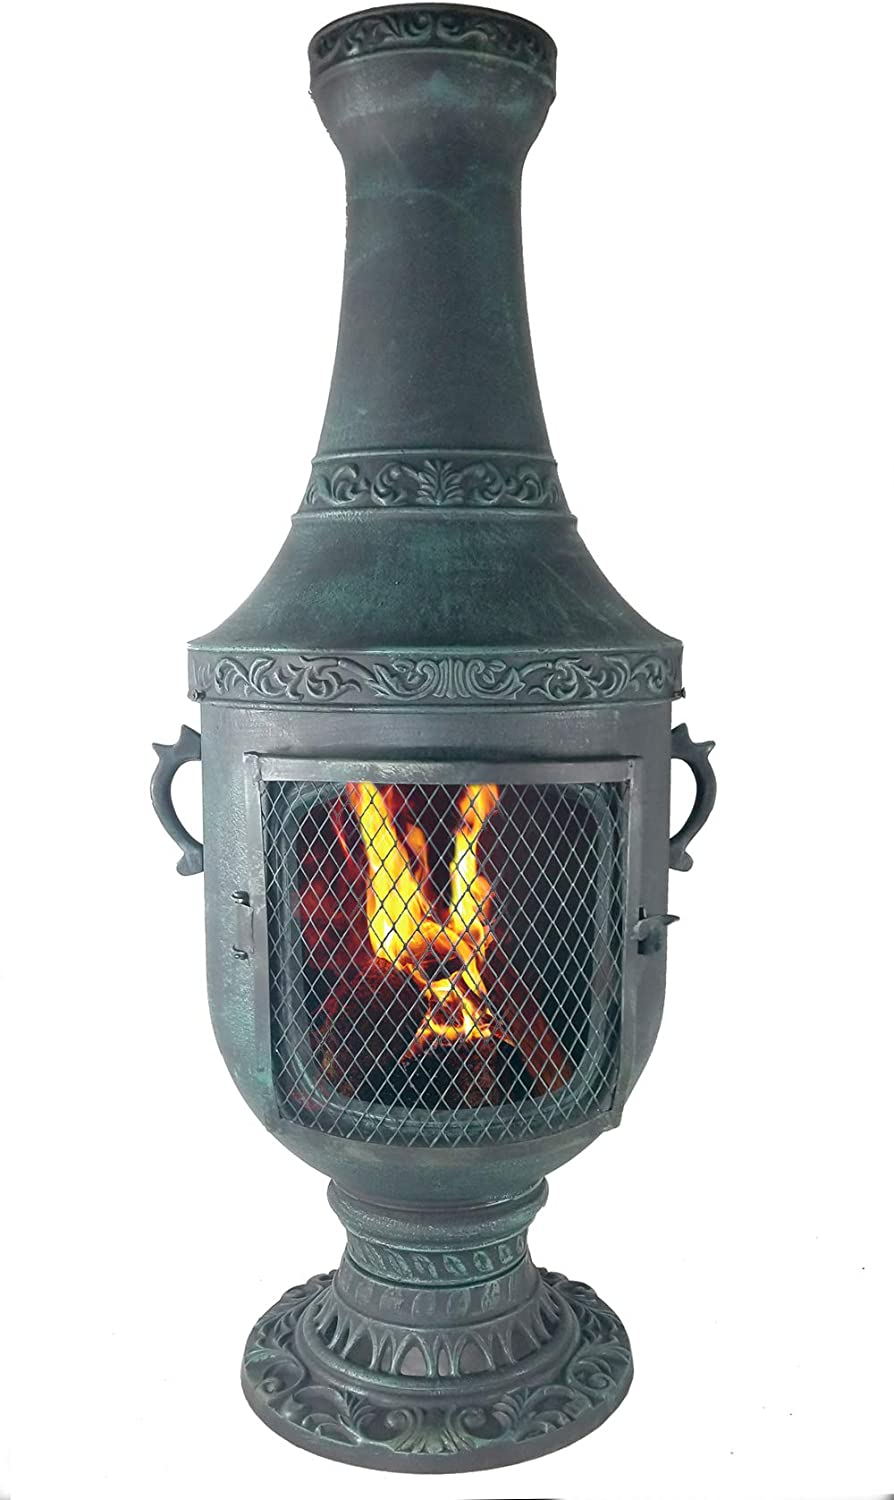 The Venetian Grill Oven Chiminea in Antique Green CAST Aluminum